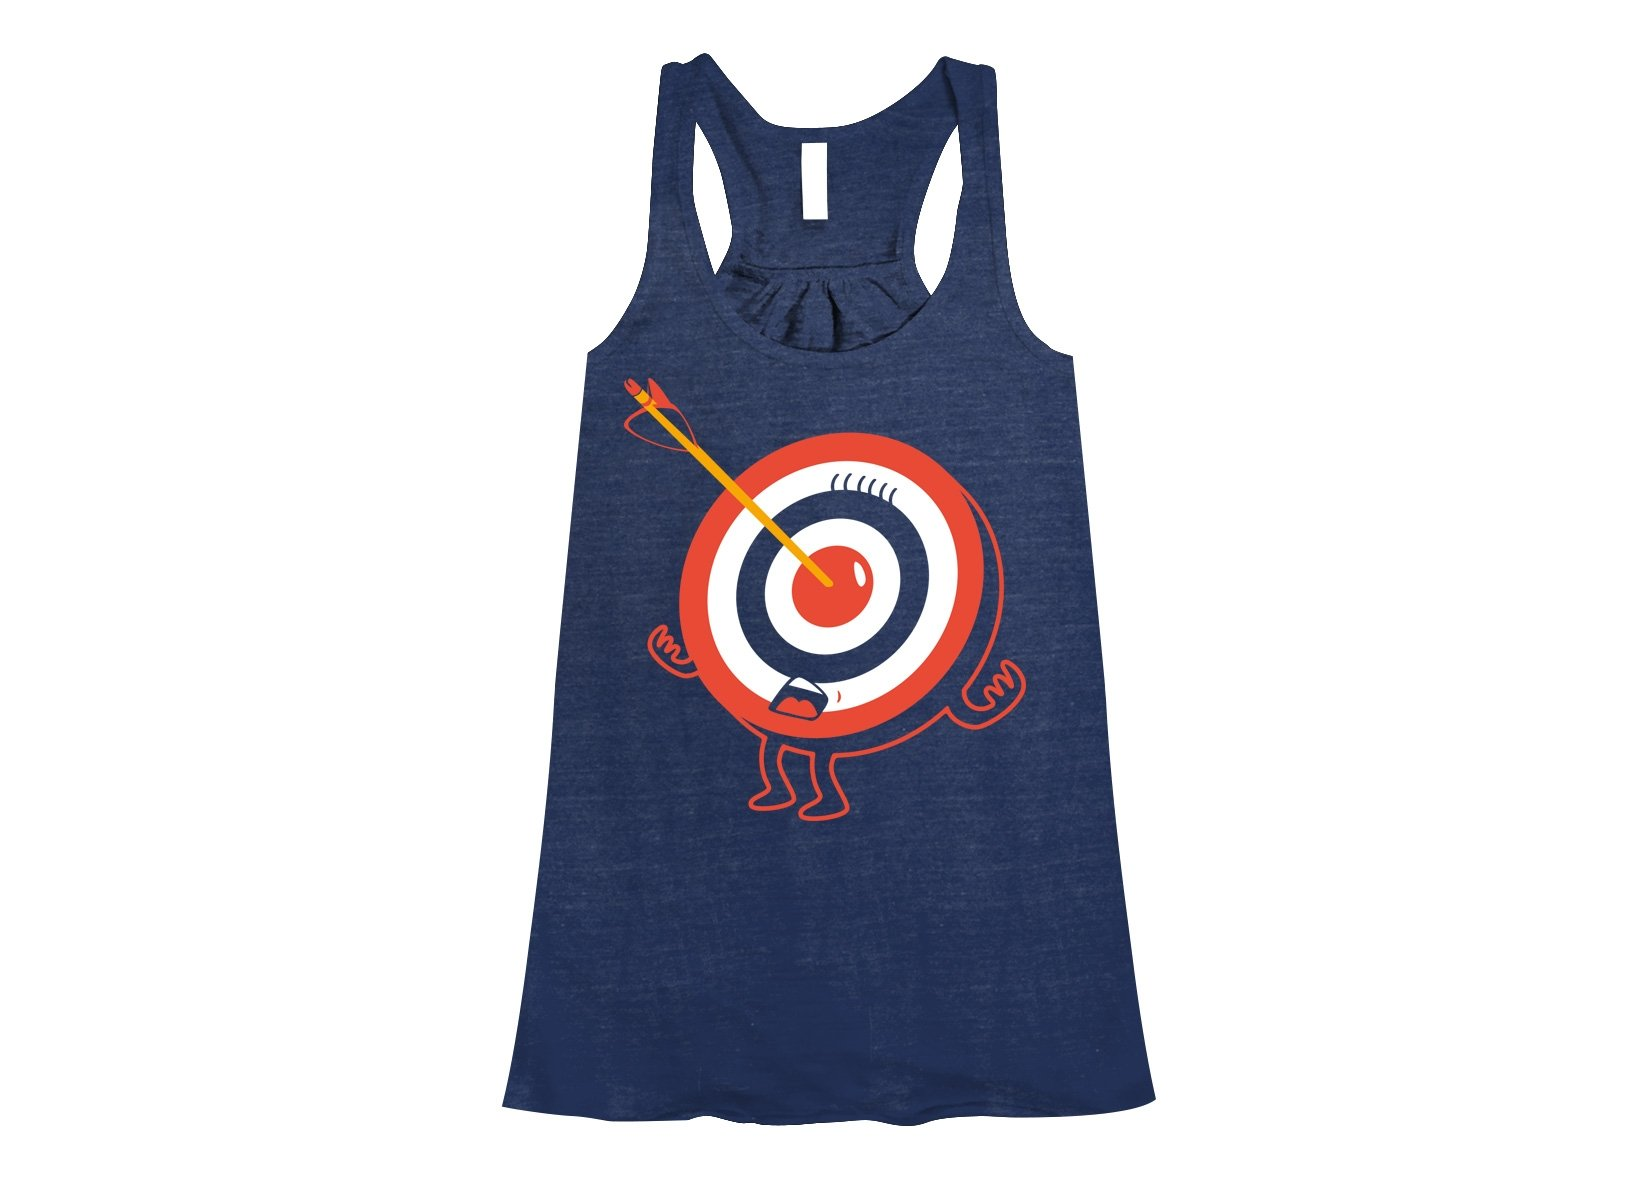 Bullseye on Womens Tanks T-Shirt